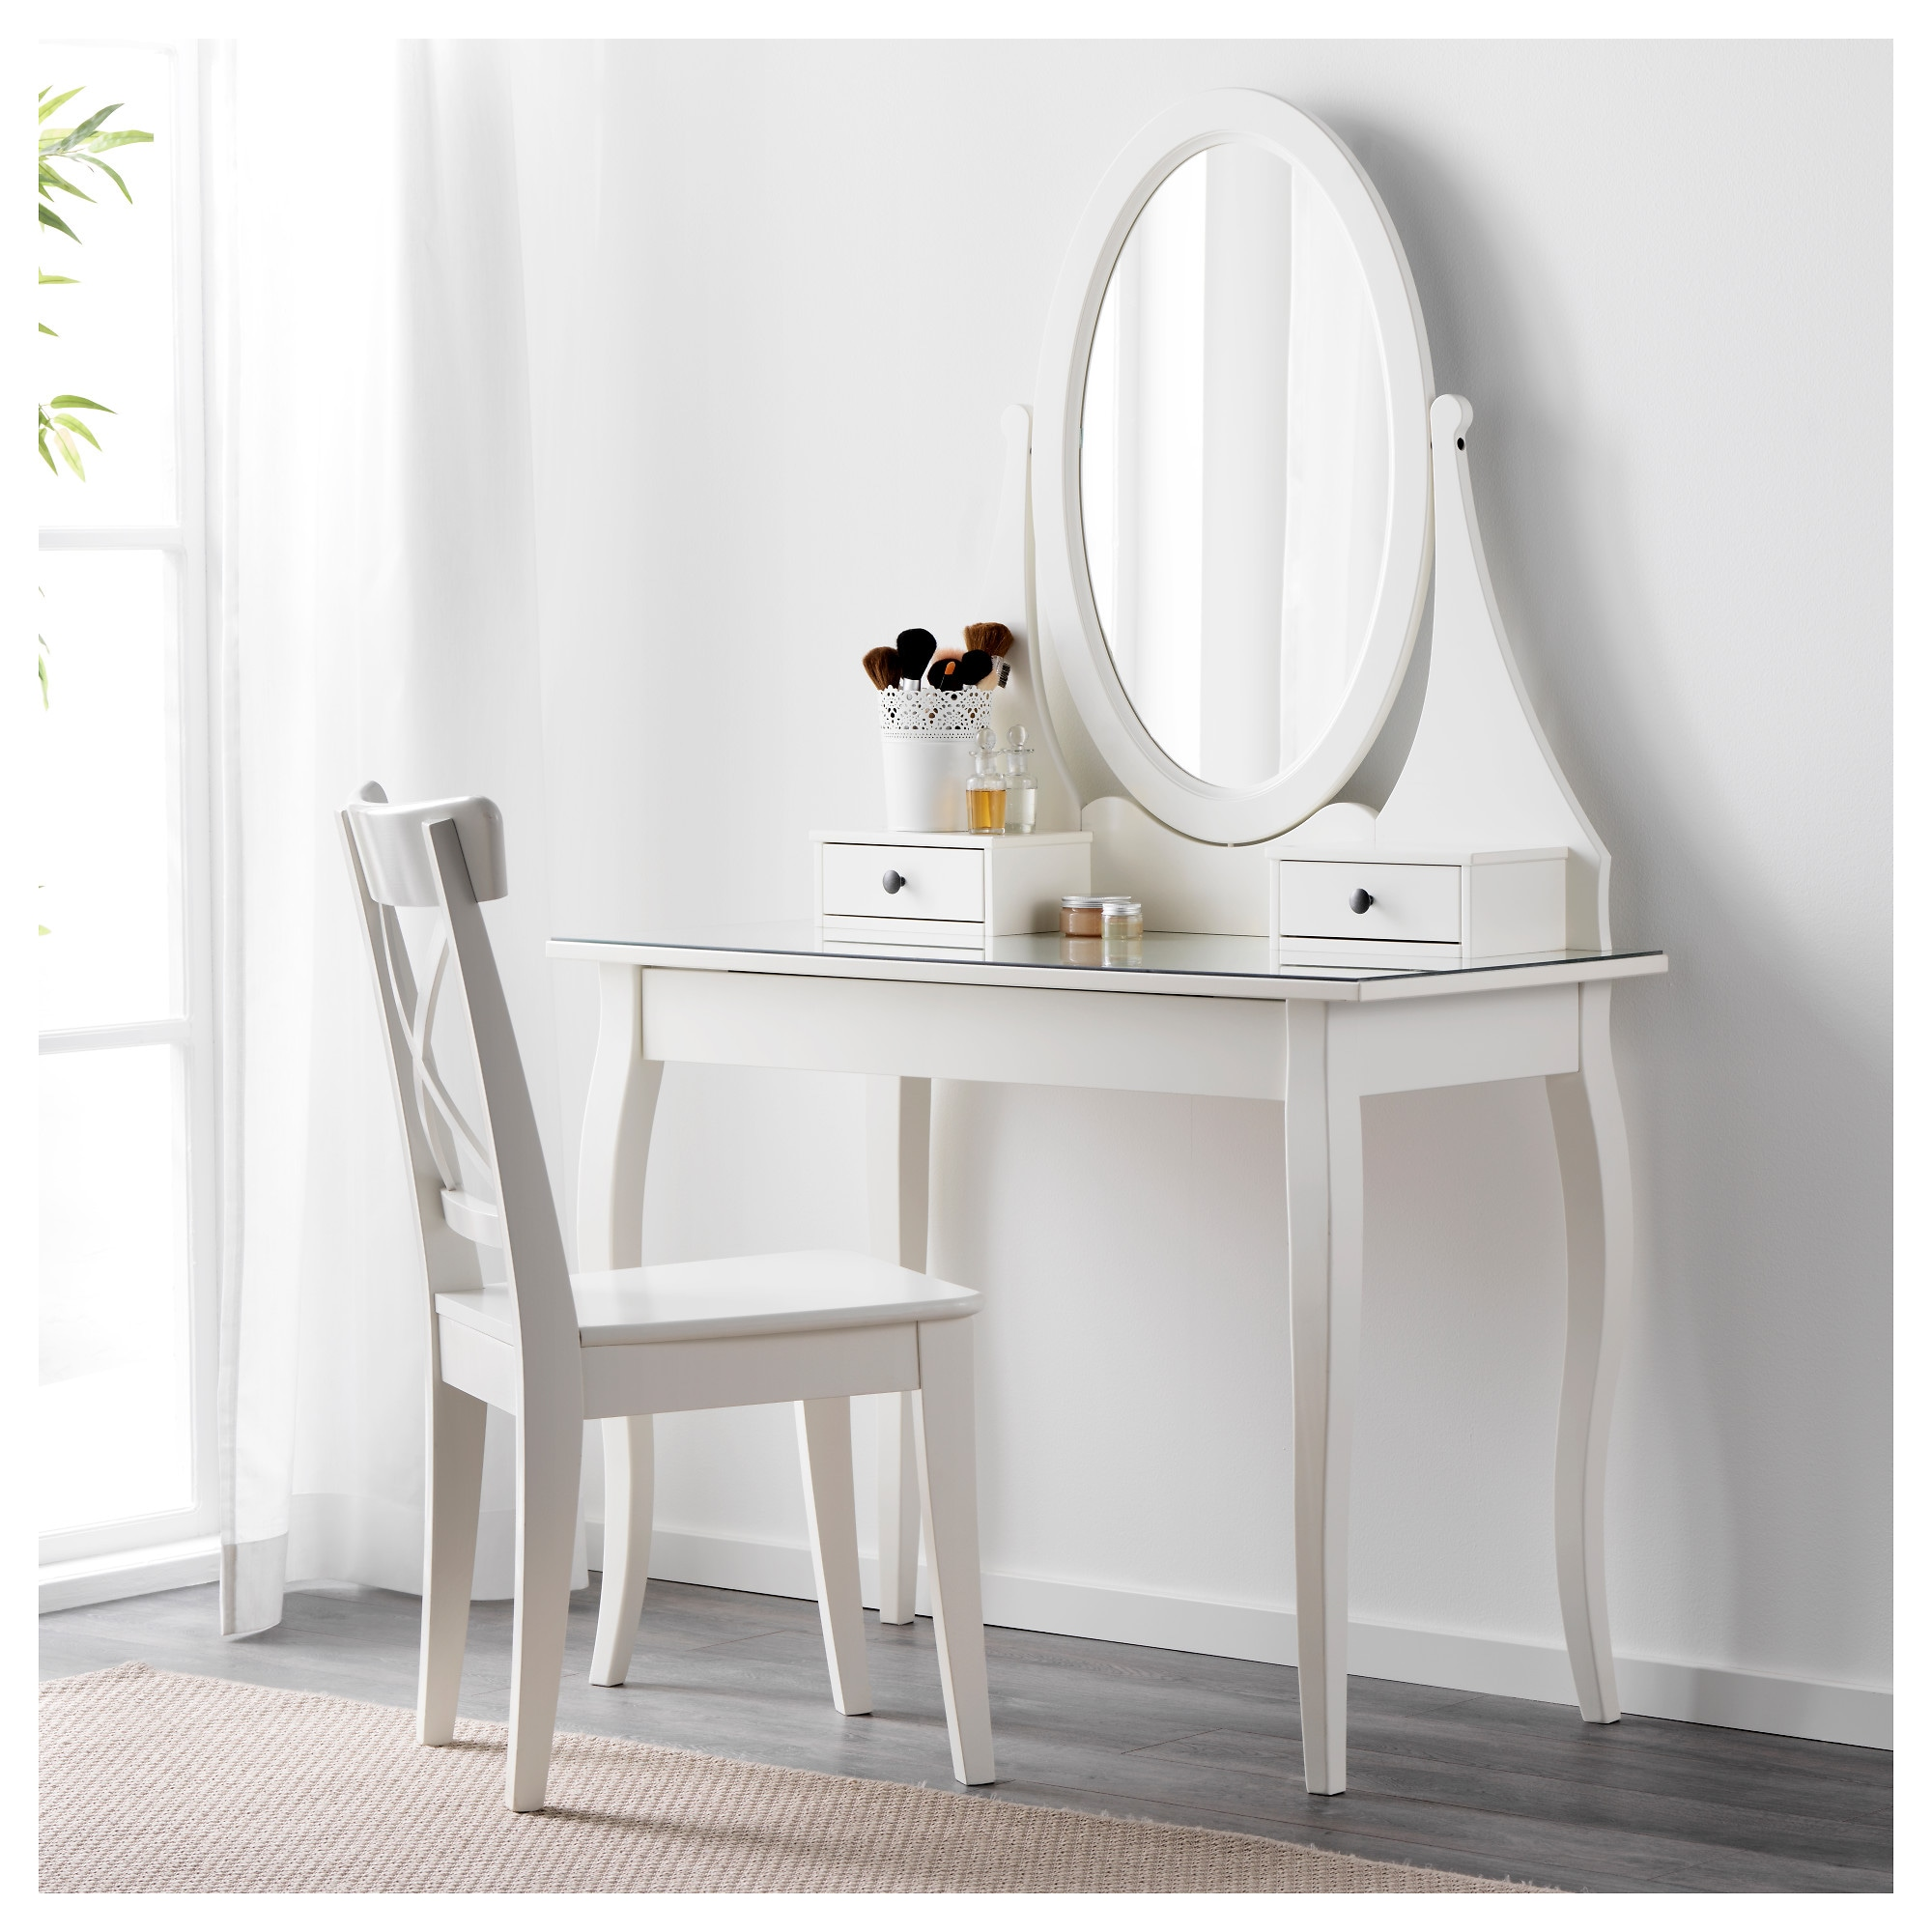 Dressing table mirrors ikea - Dressing Table Mirrors Ikea 22